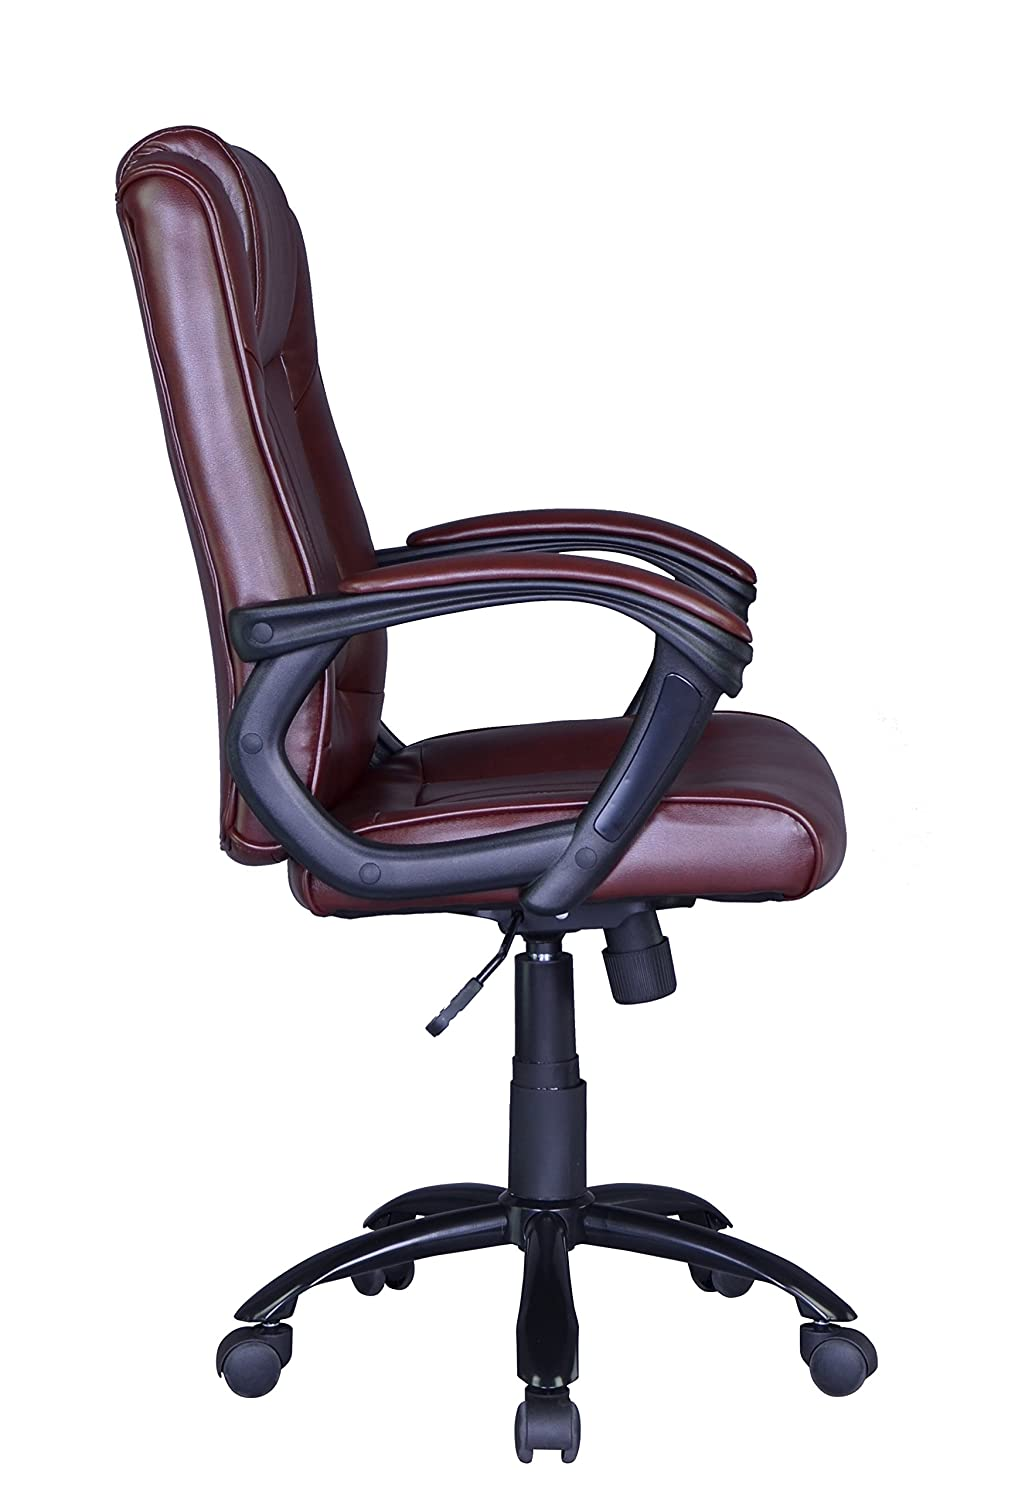 Good office chairs ergonomic - Most Comfy Computer Chair Most Comfortable Desk Chair